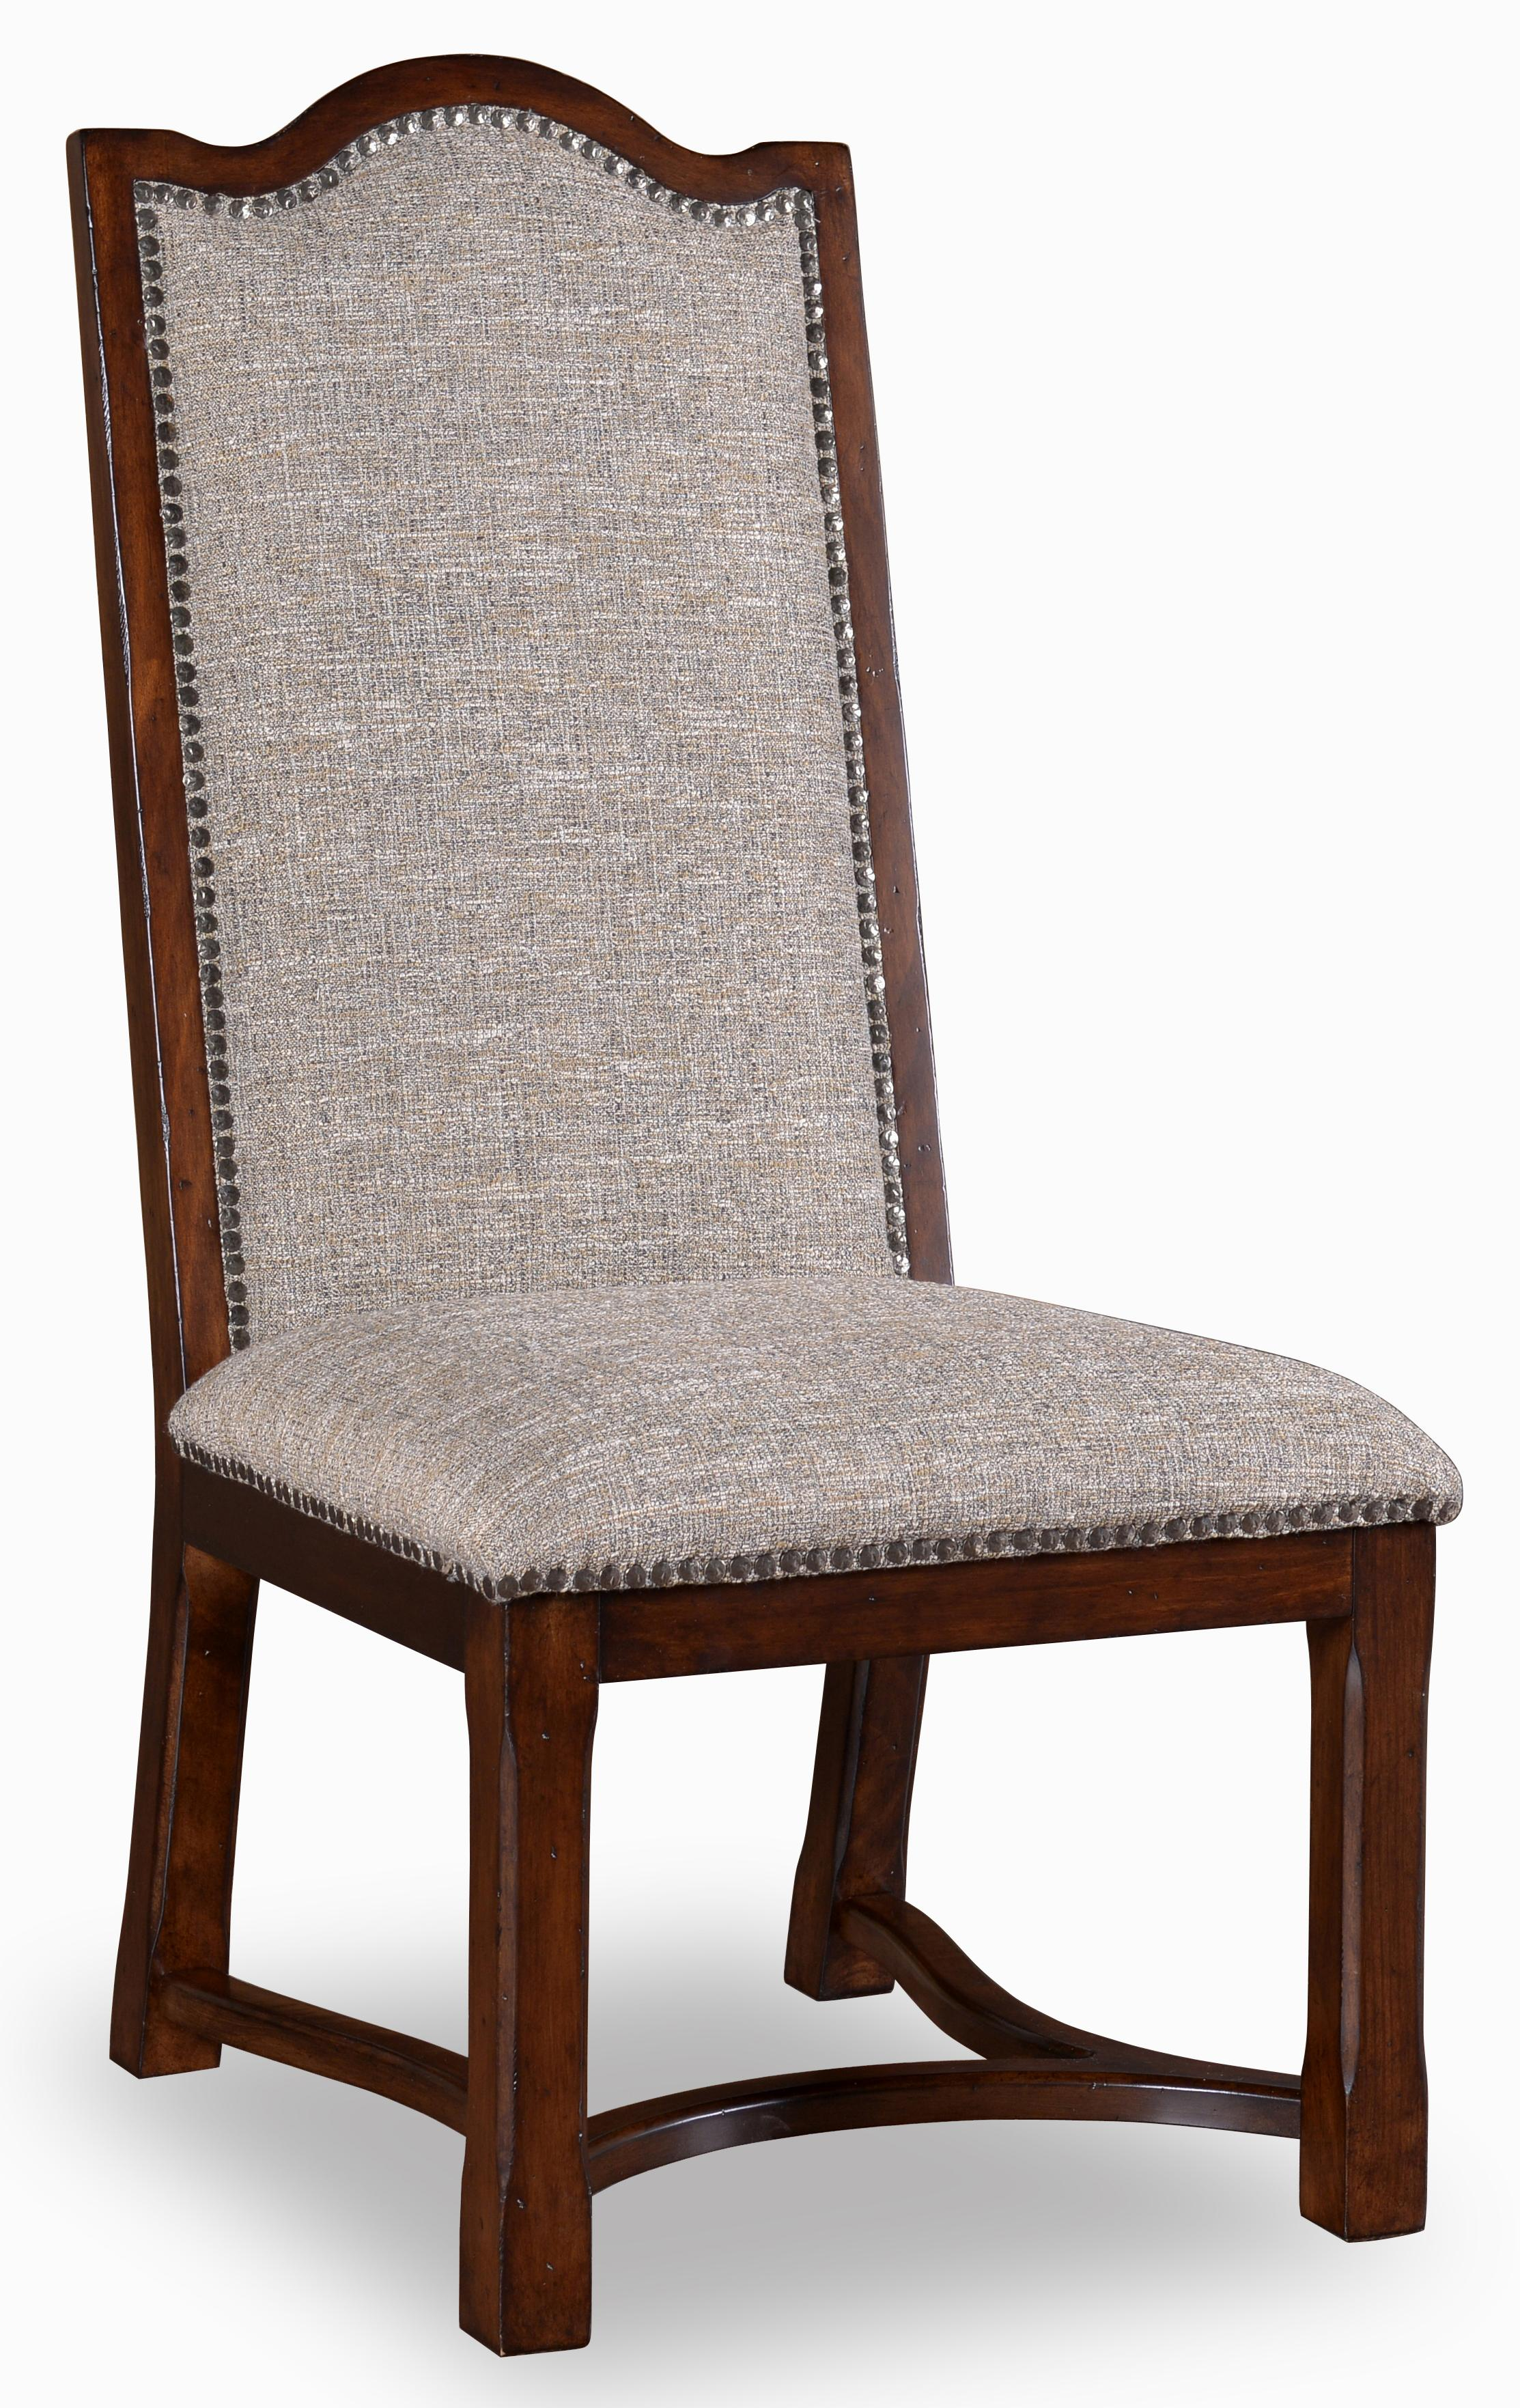 Belfort Signature Edwards Ferry Upholstered Side Chair - Item Number: 210206-2106